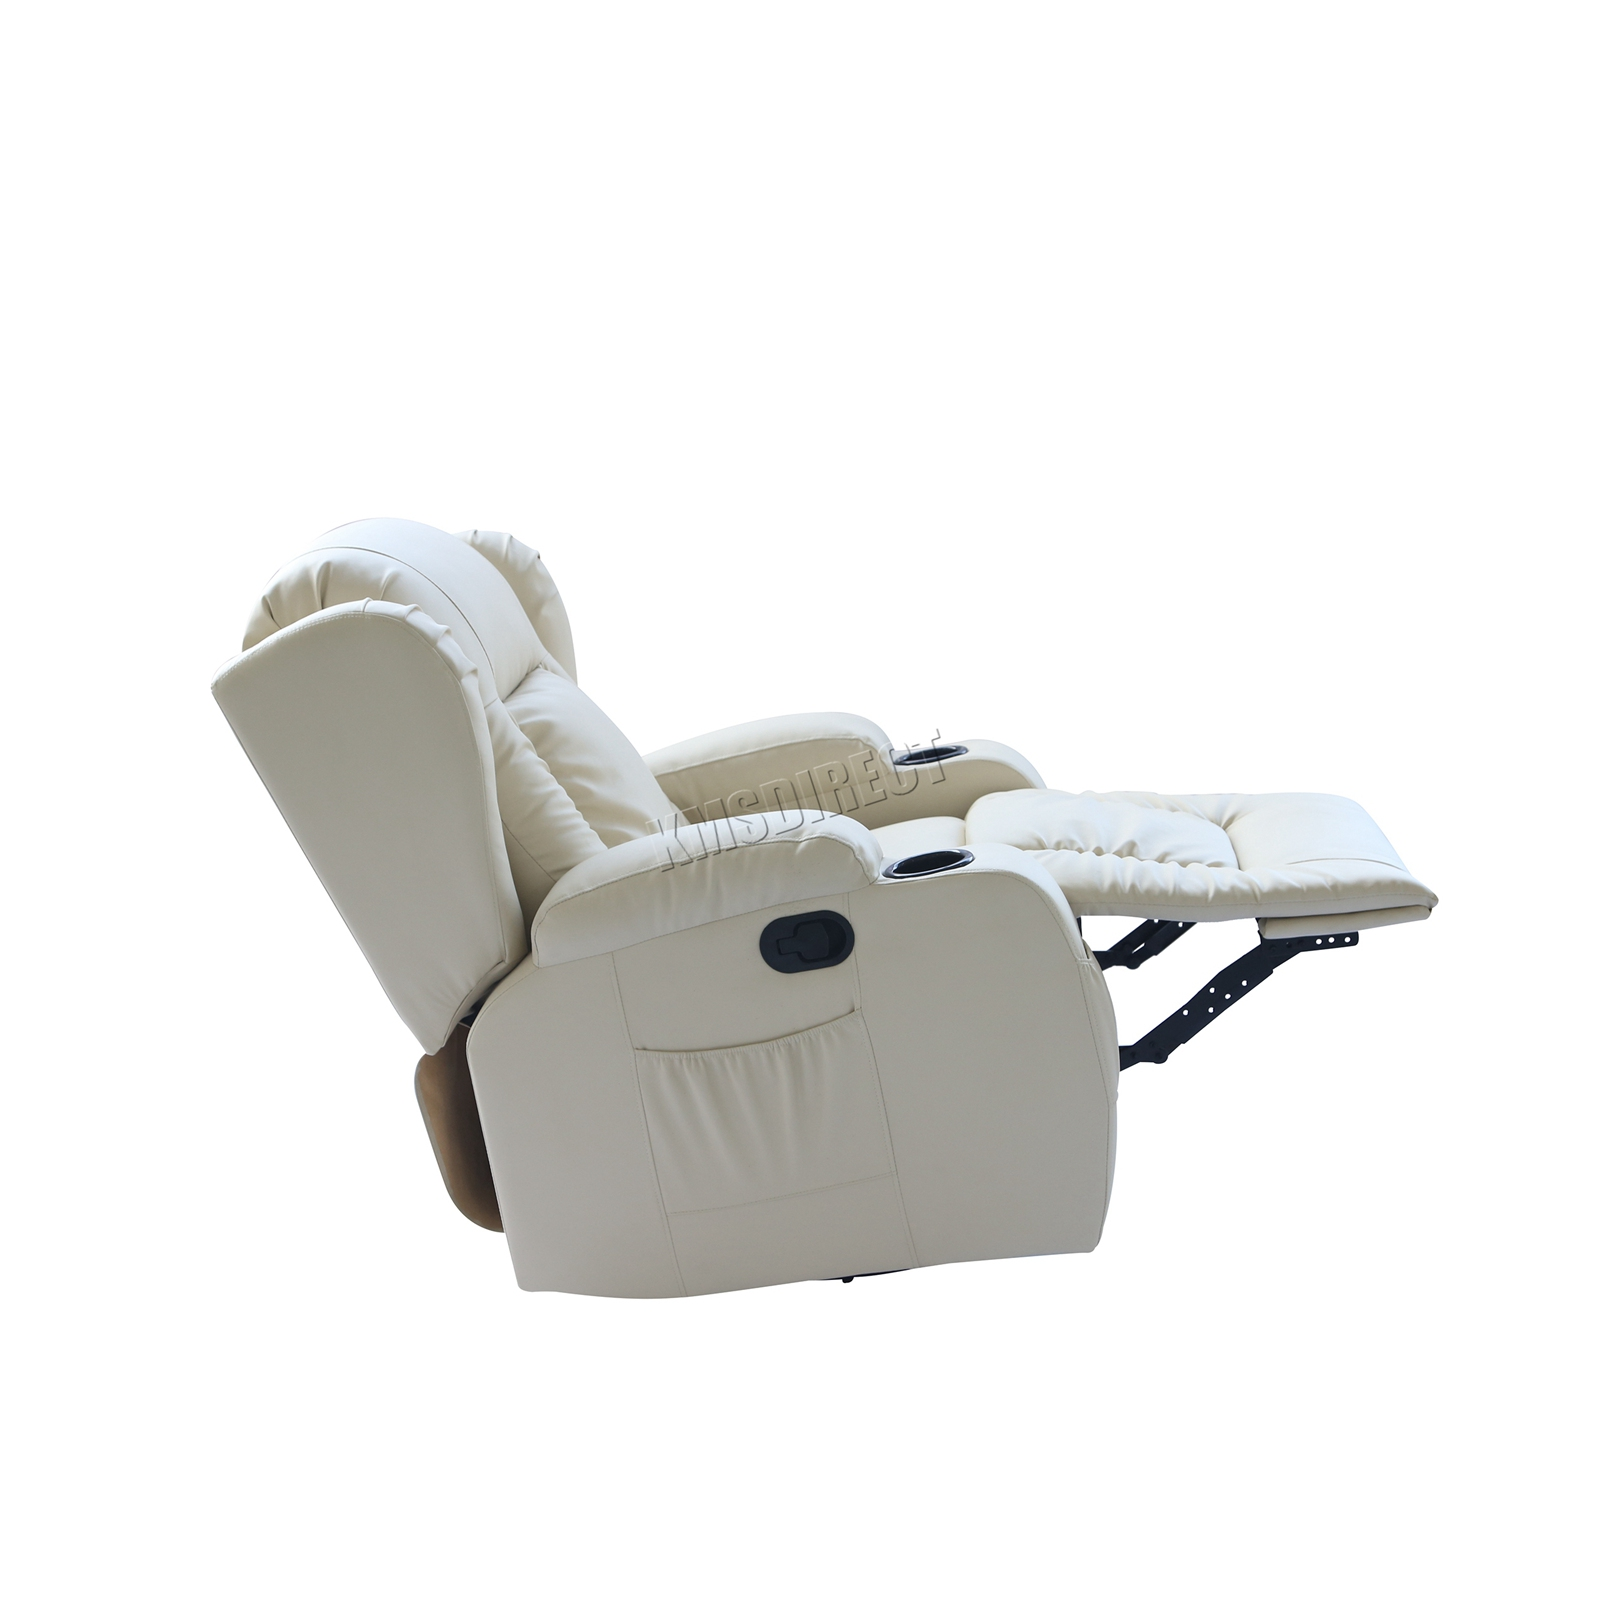 WESTWOOD-Leather-Recliner-Armchair-Swivel-Heated-chair-Massage-Gaming-Chair thumbnail 42